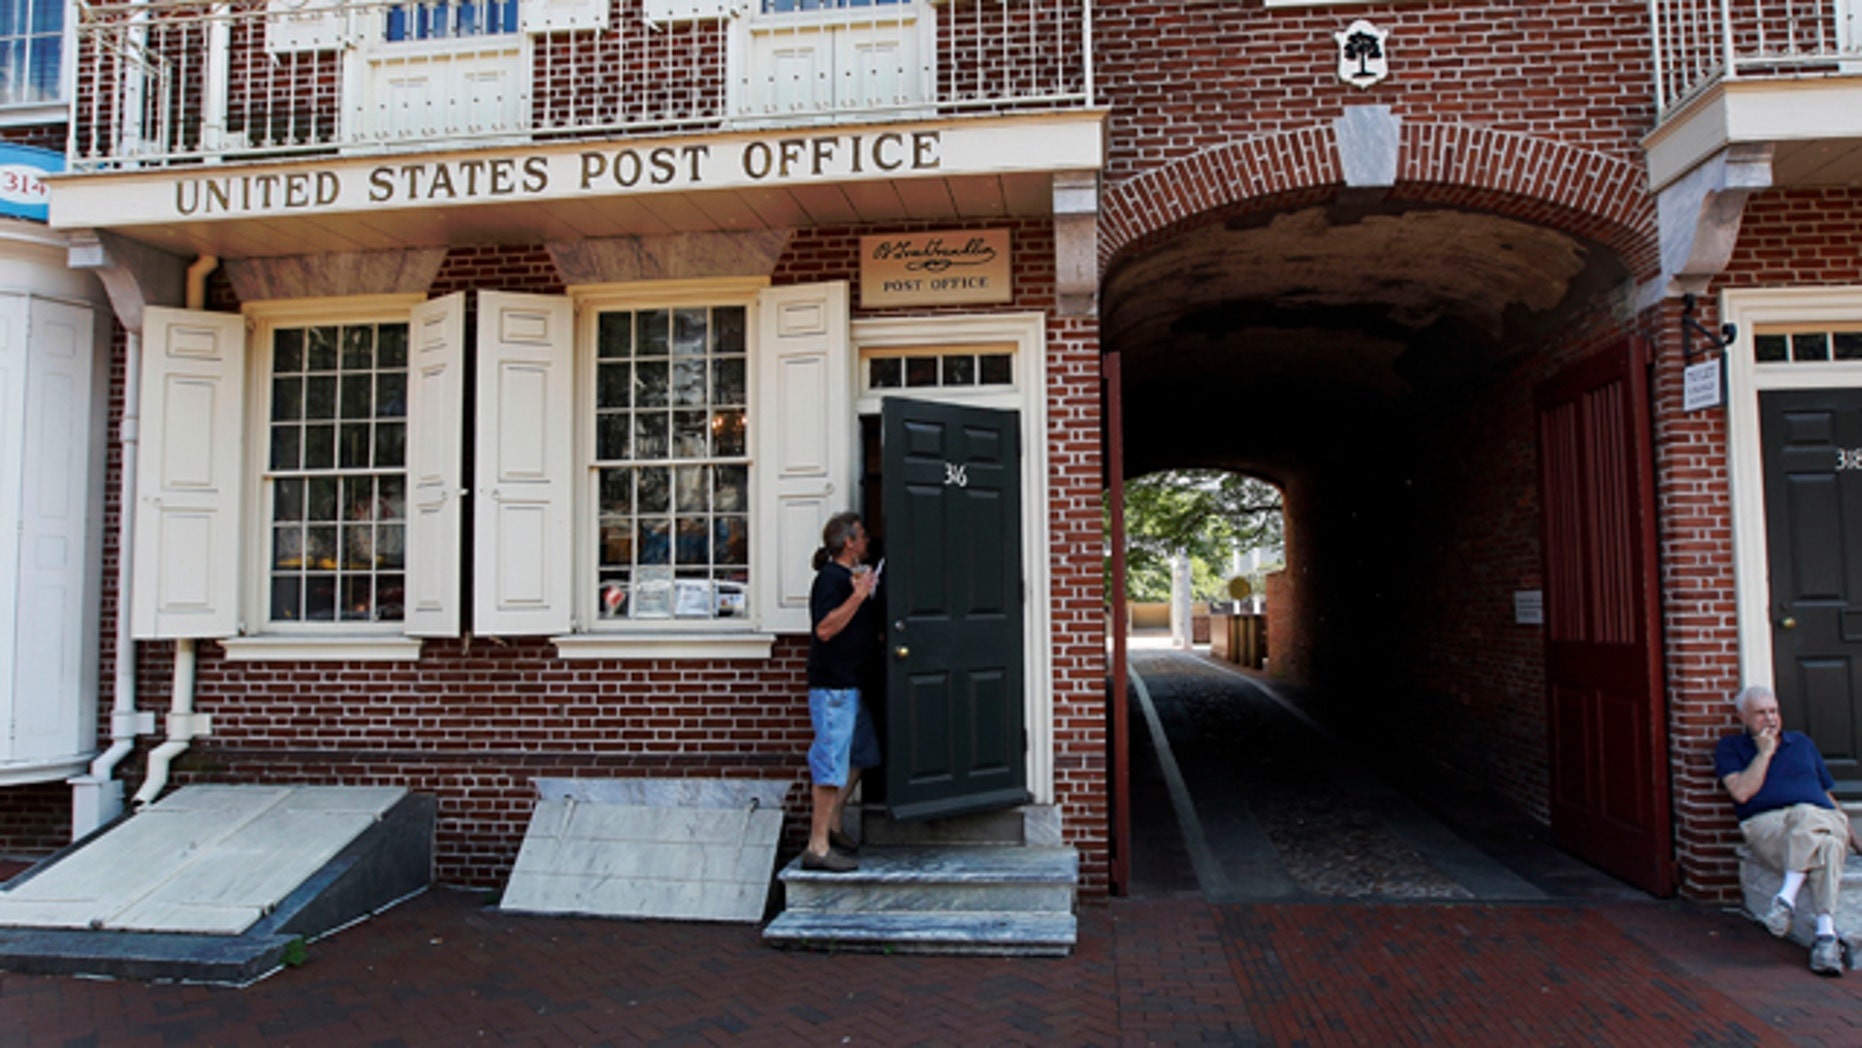 July 26: A man goes in the United States Post Office that predates the American colonies and is on the Postal Service's list of branches that could close.